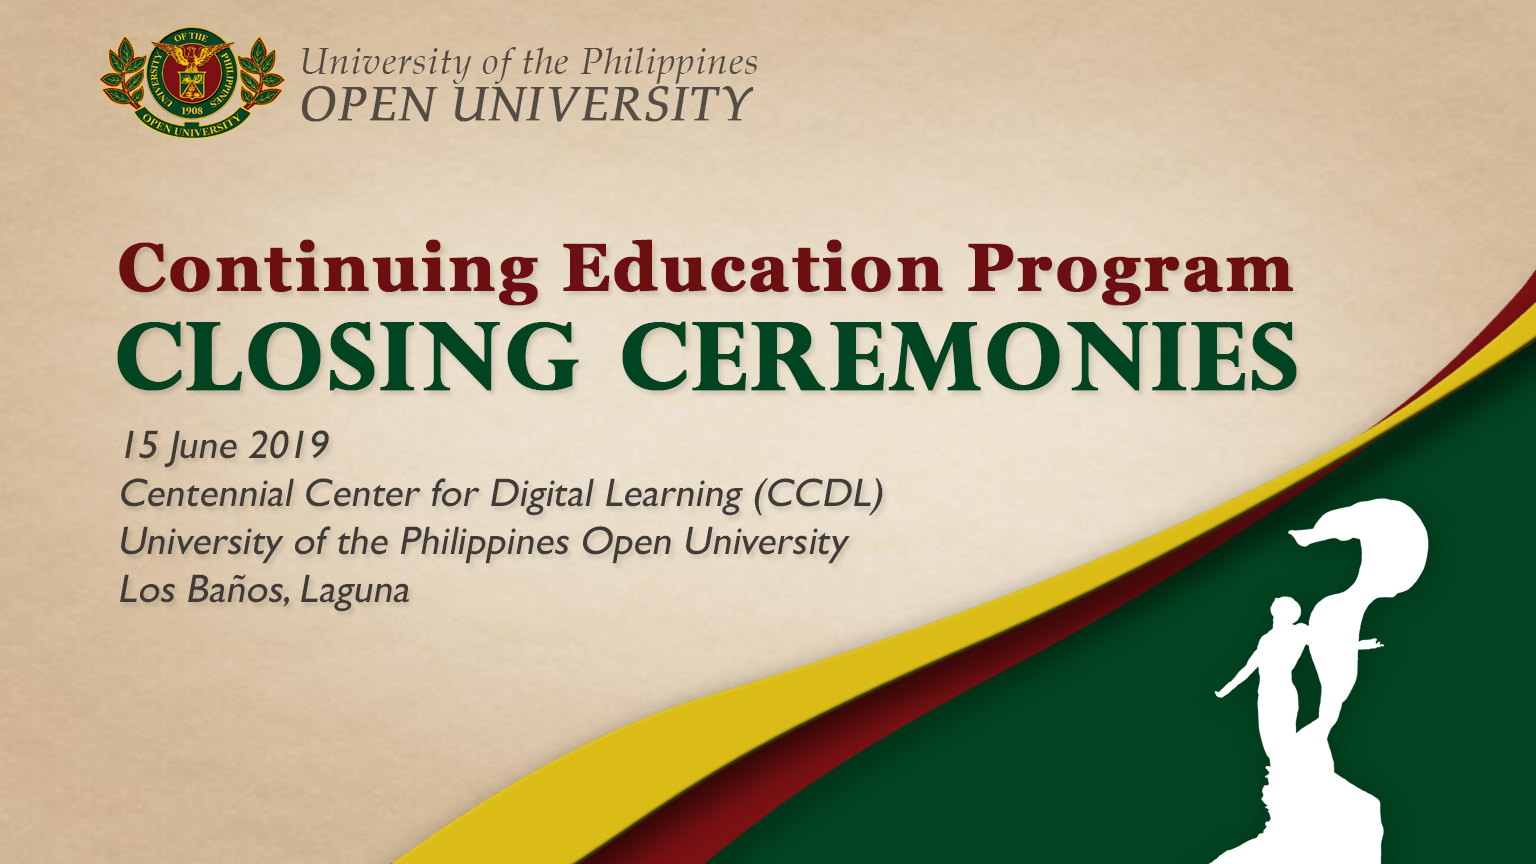 Continuing Education Program Closing Ceremonies